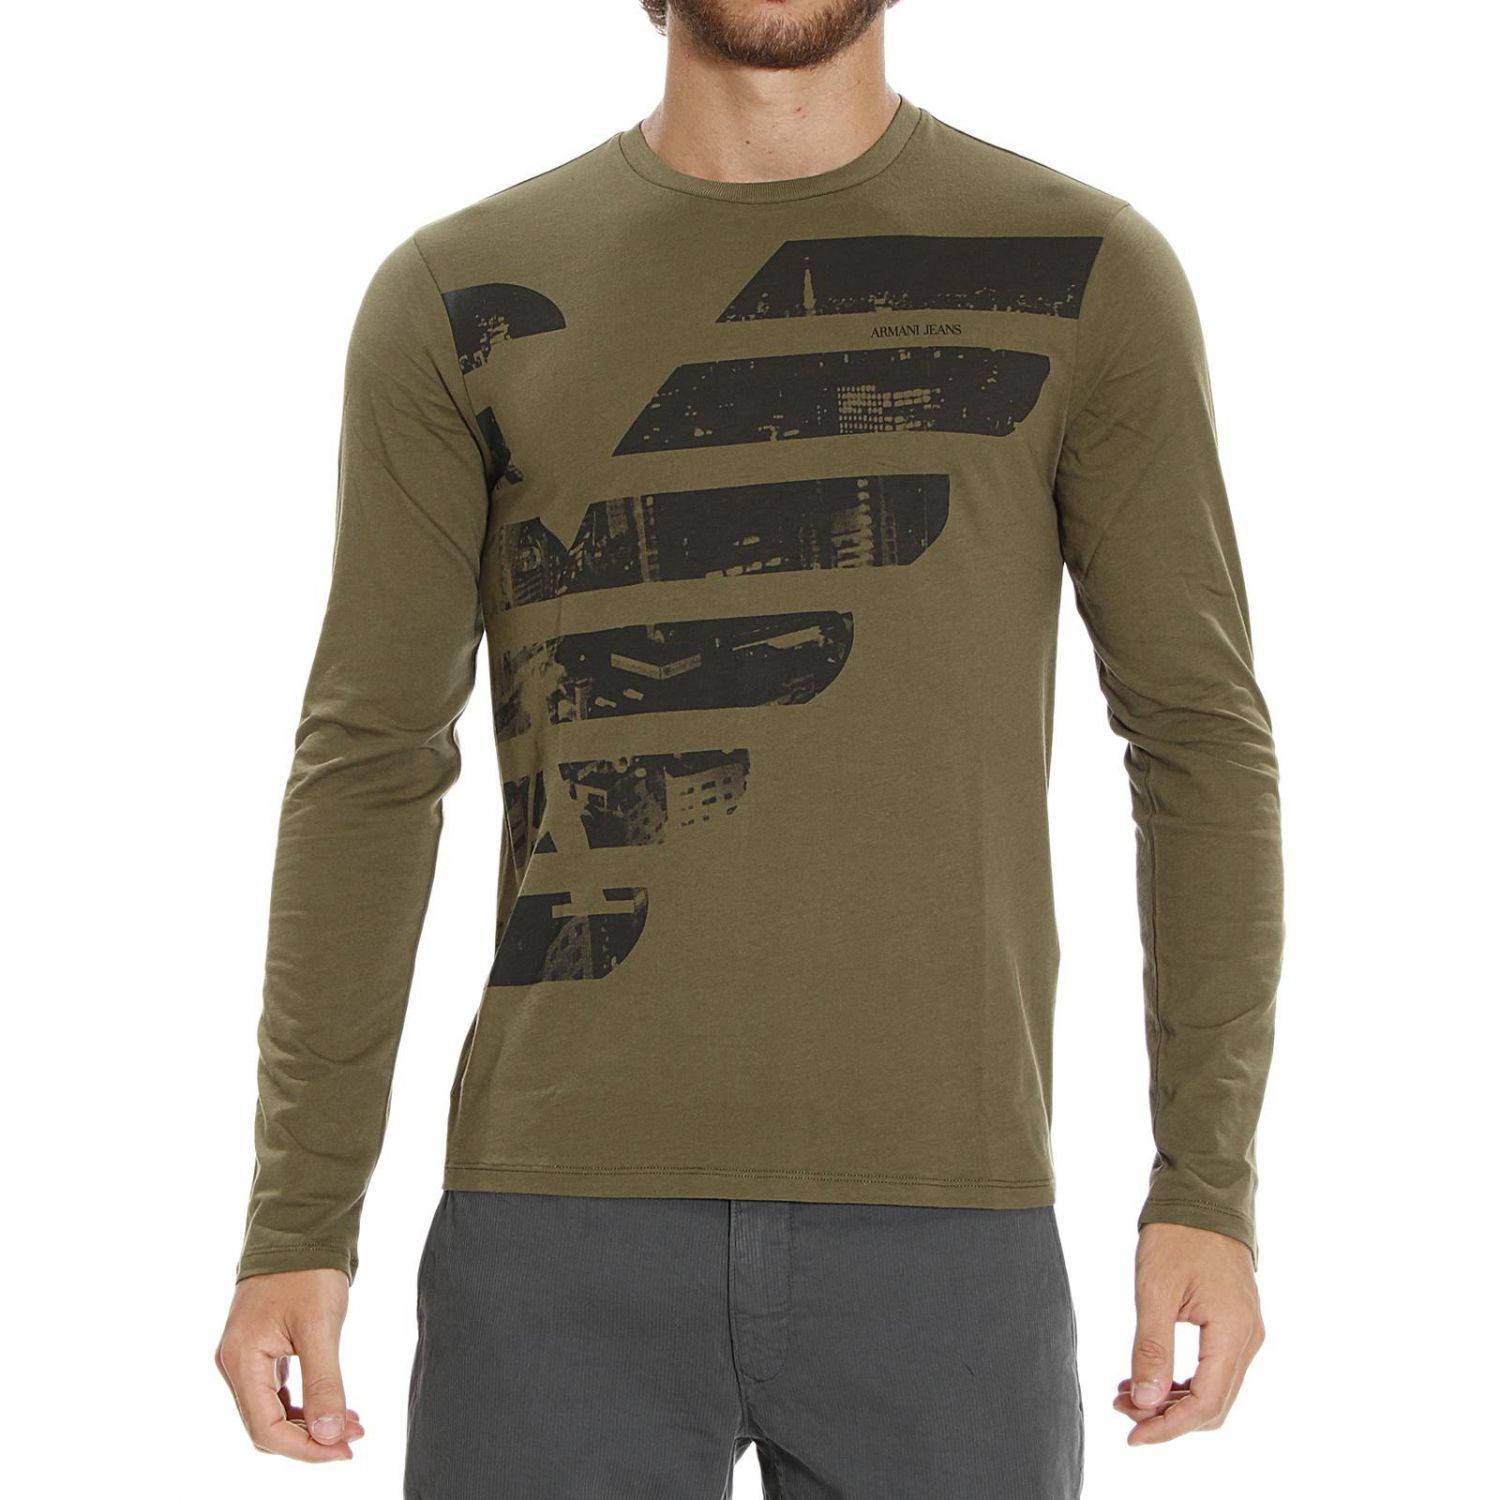 giorgio armani t shirt in green for men lyst. Black Bedroom Furniture Sets. Home Design Ideas